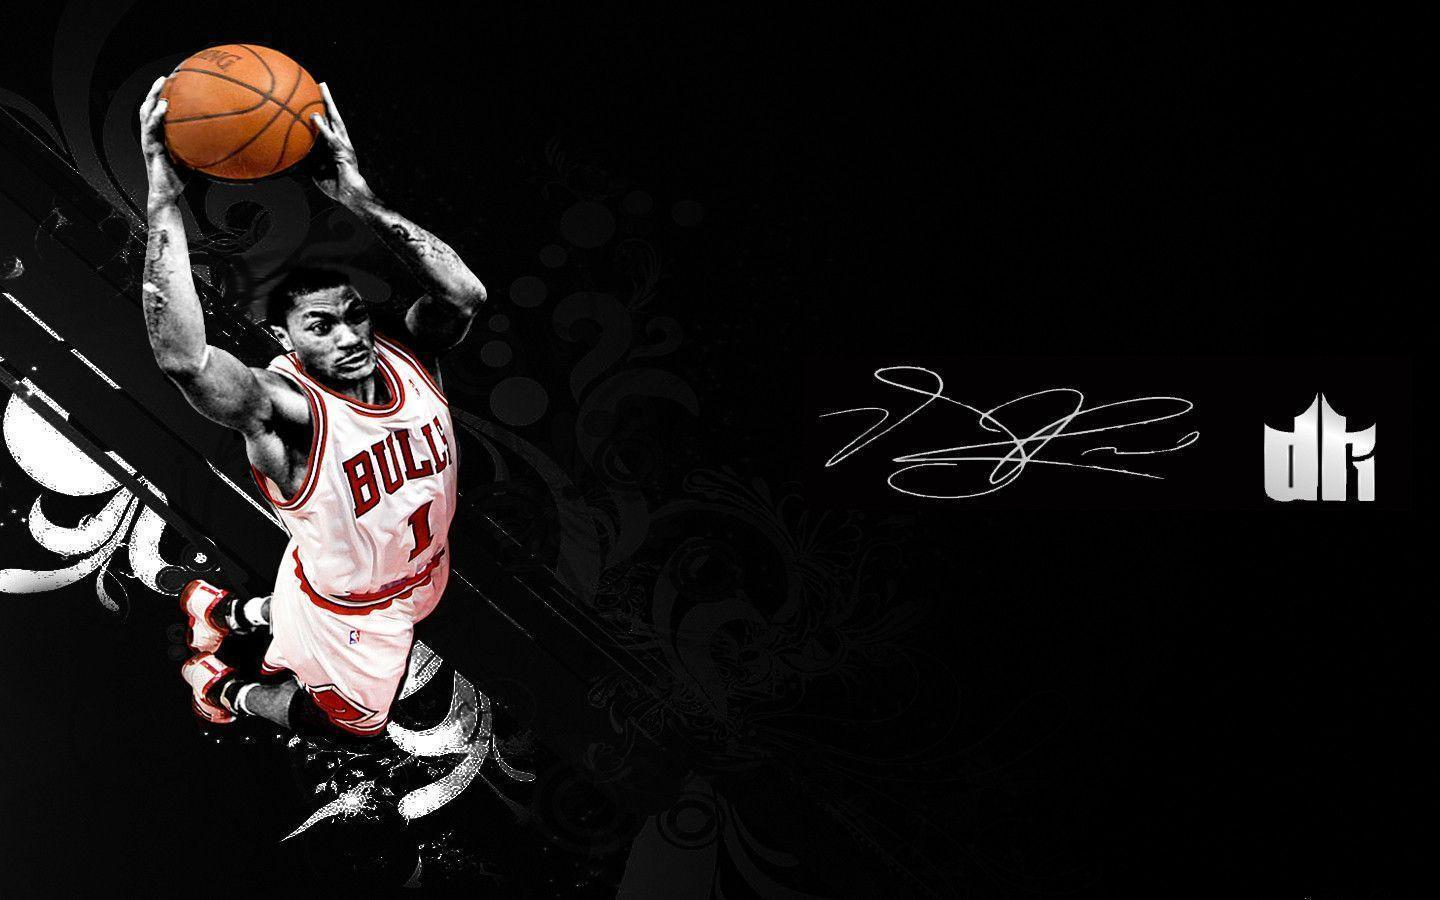 Wallpapers For > Derrick Rose Adidas Wallpapers 2013